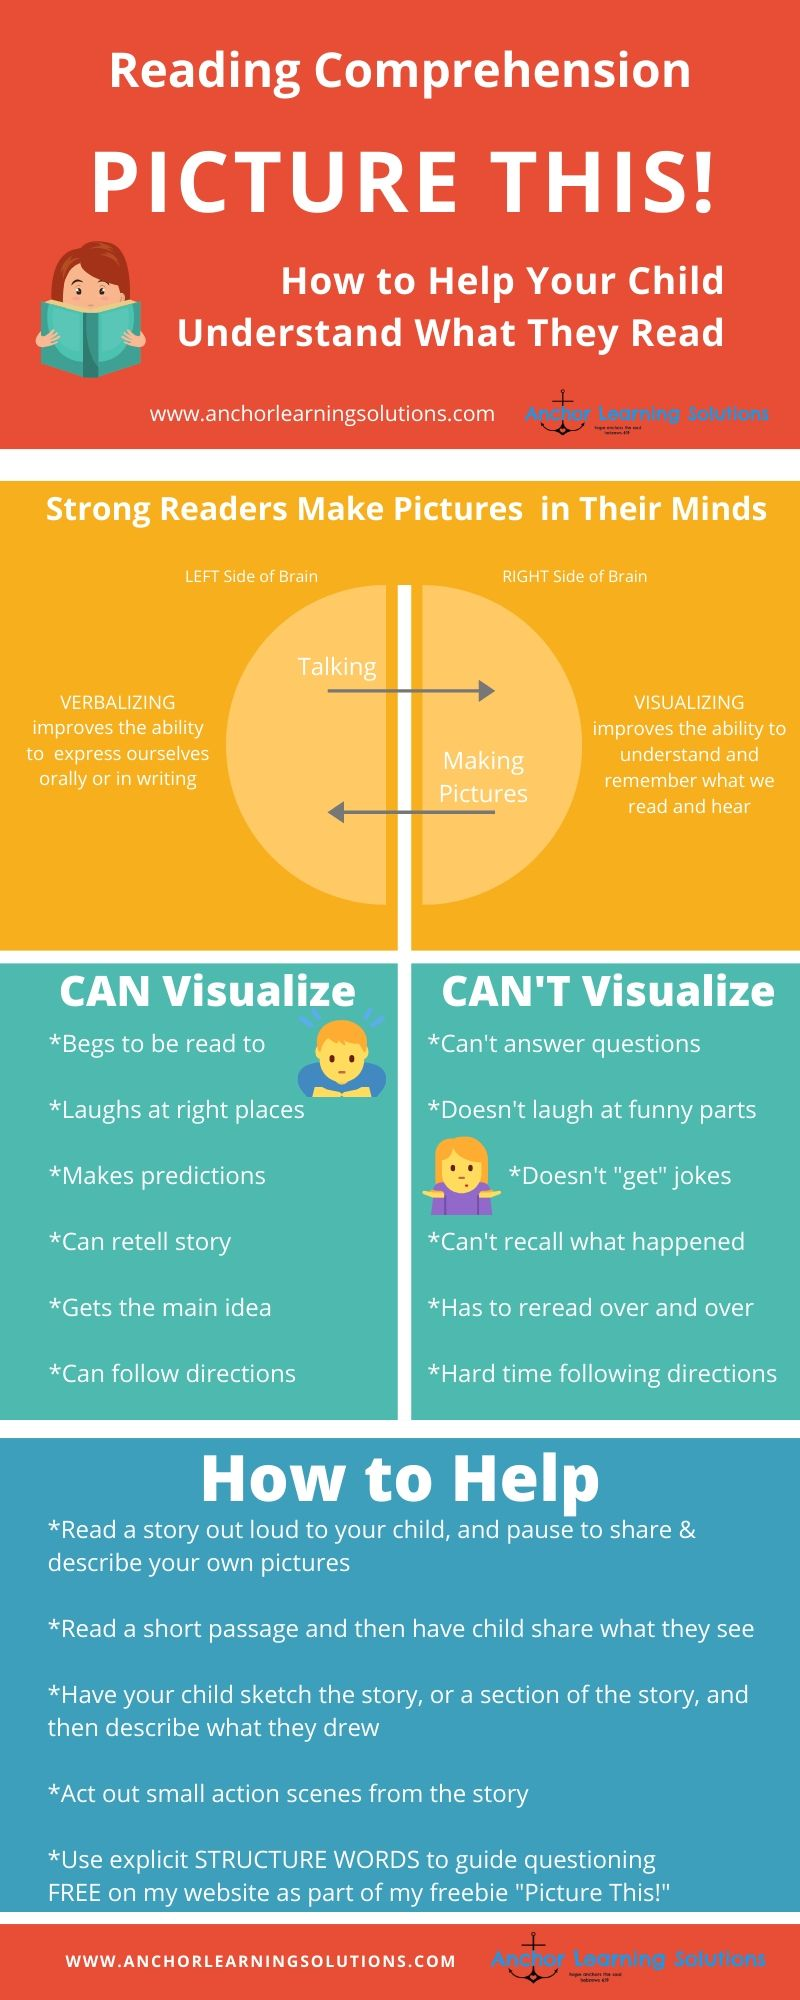 Reading Comprehension Visualizing Verbalizing